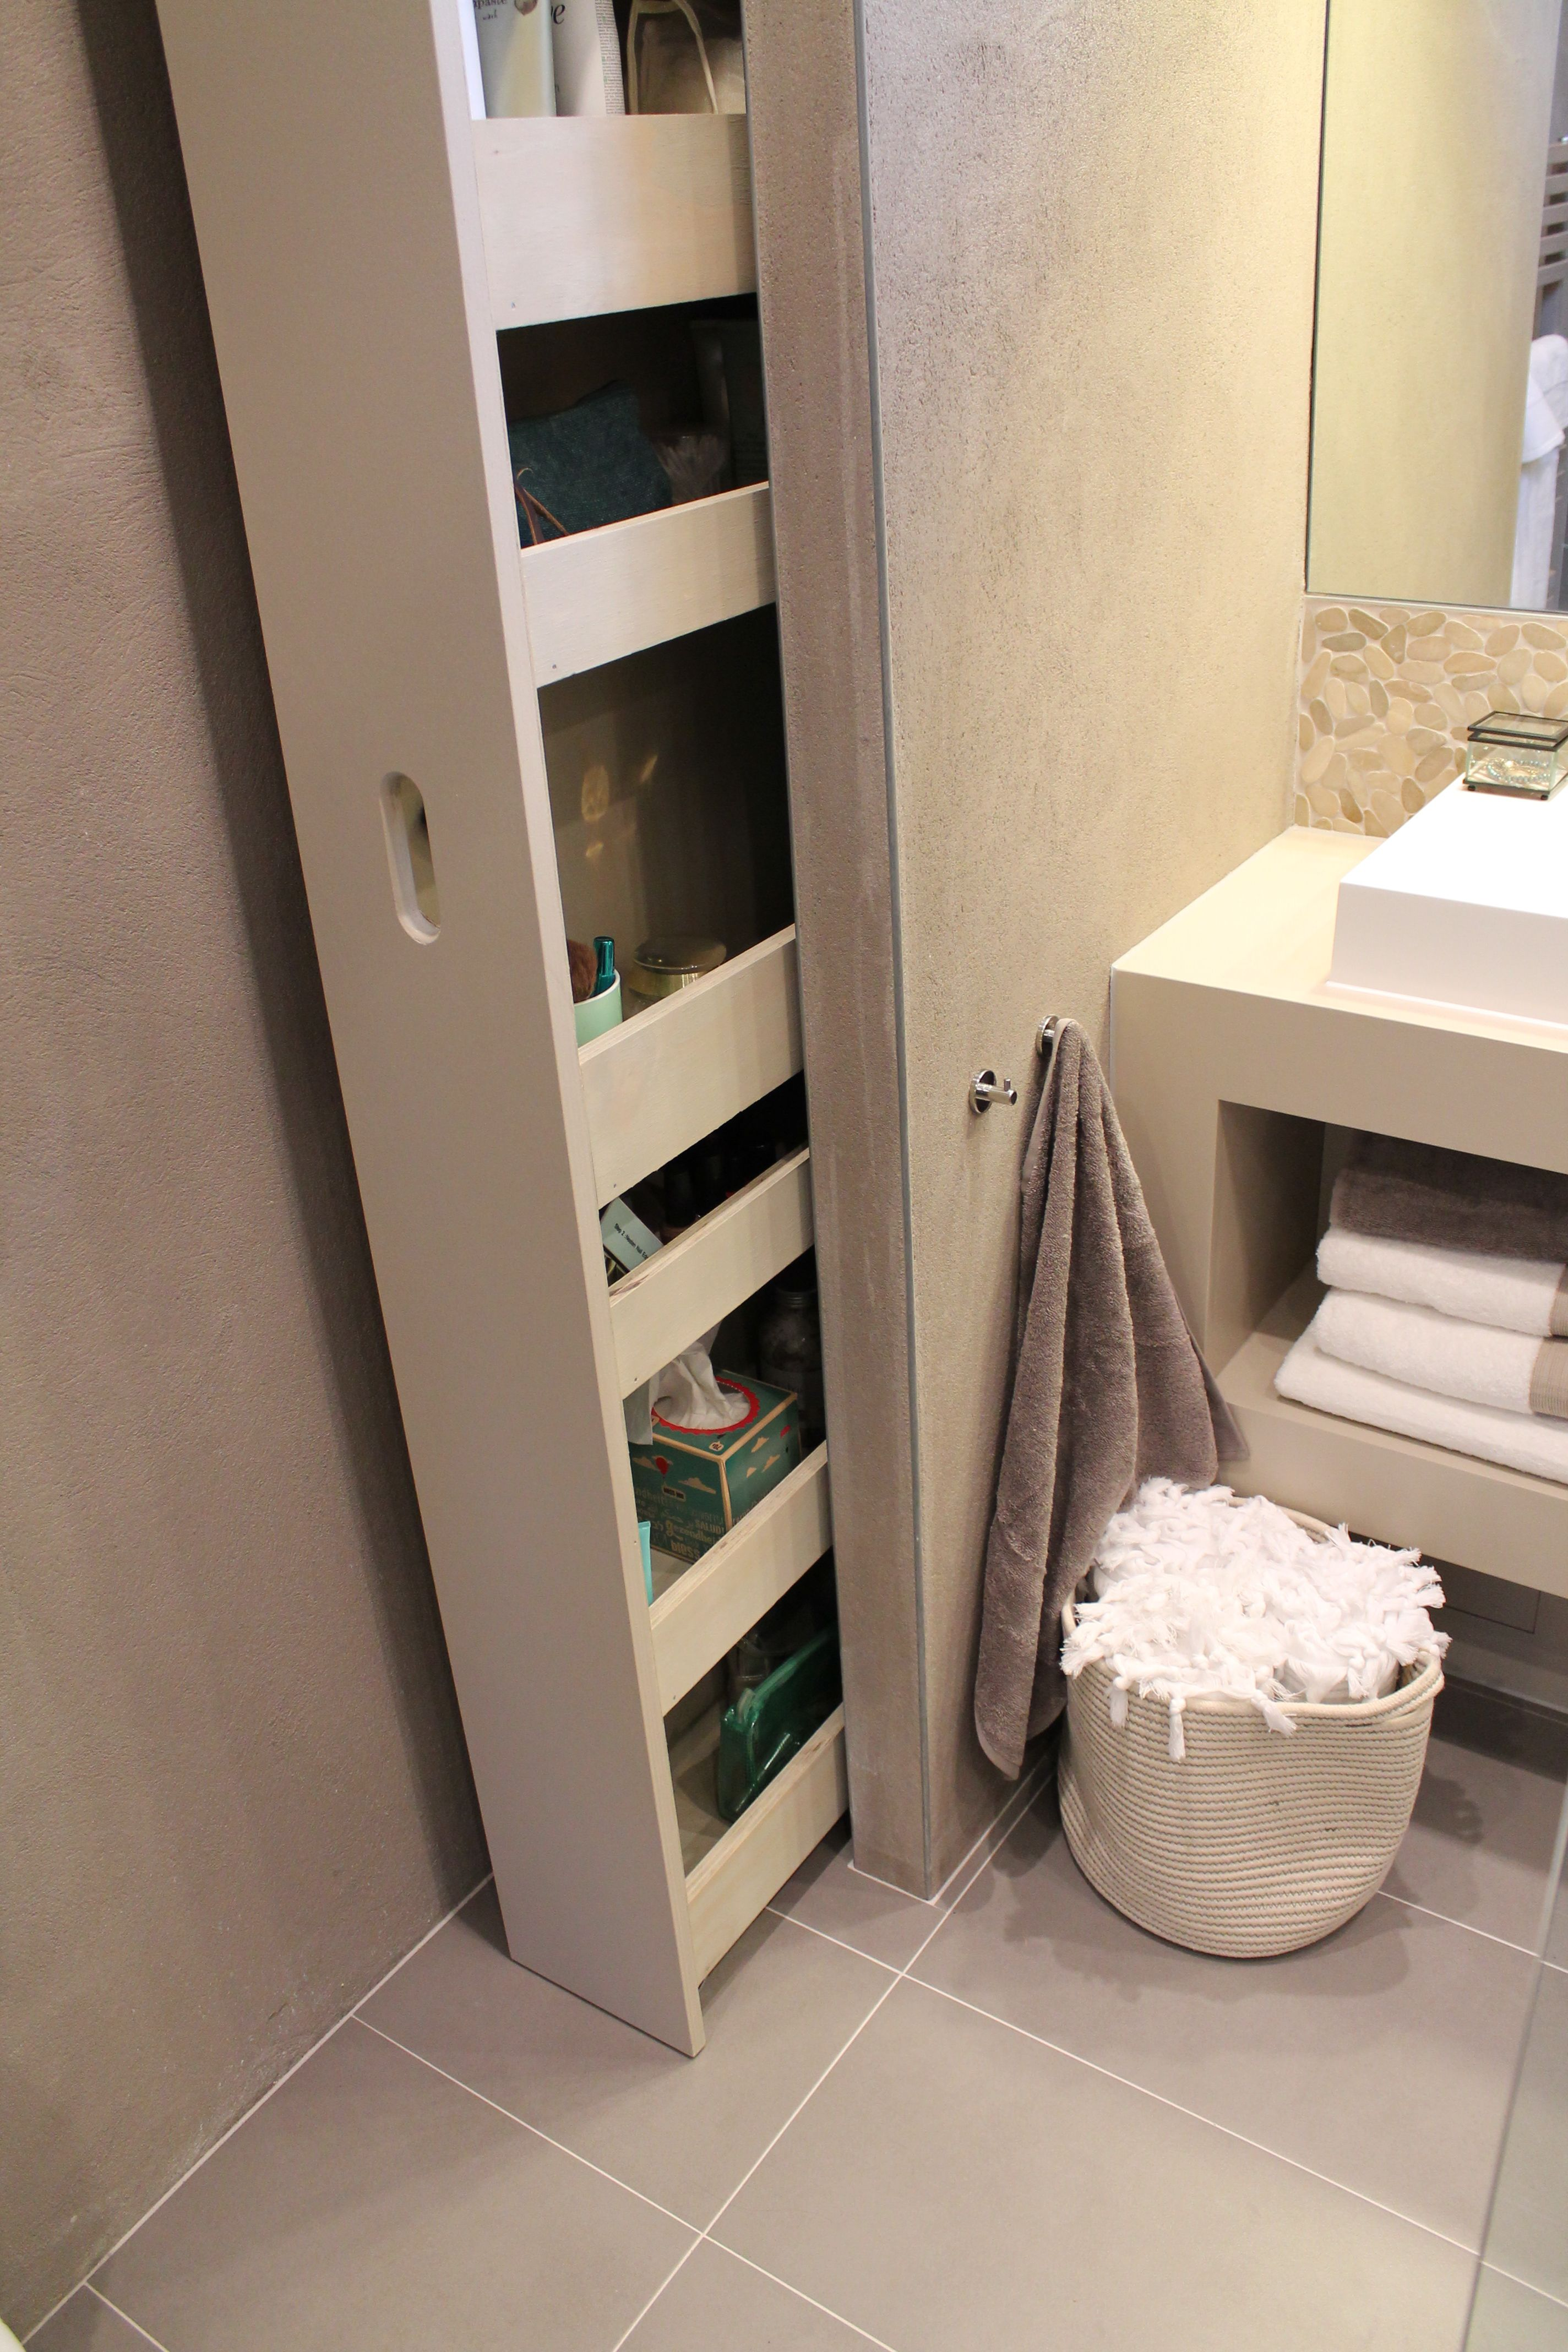 Built in bathroom storage ideas - Find This Pin And More On Bad Clever Storage Idea